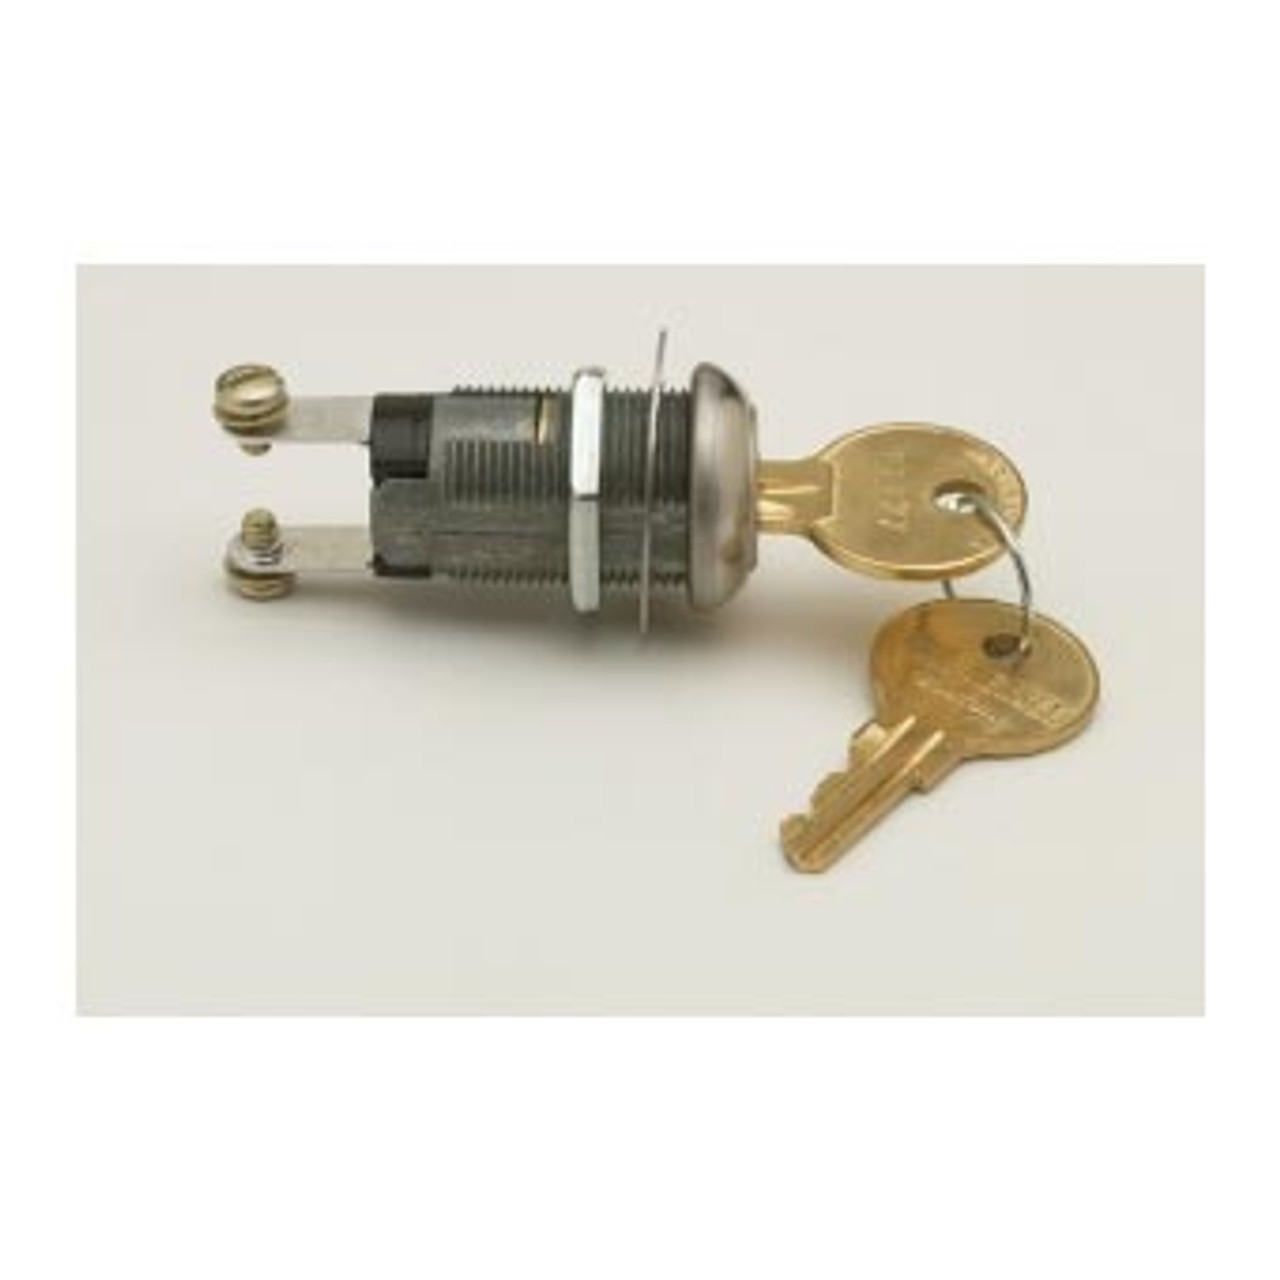 IGNITION SWITCH 2POSITION